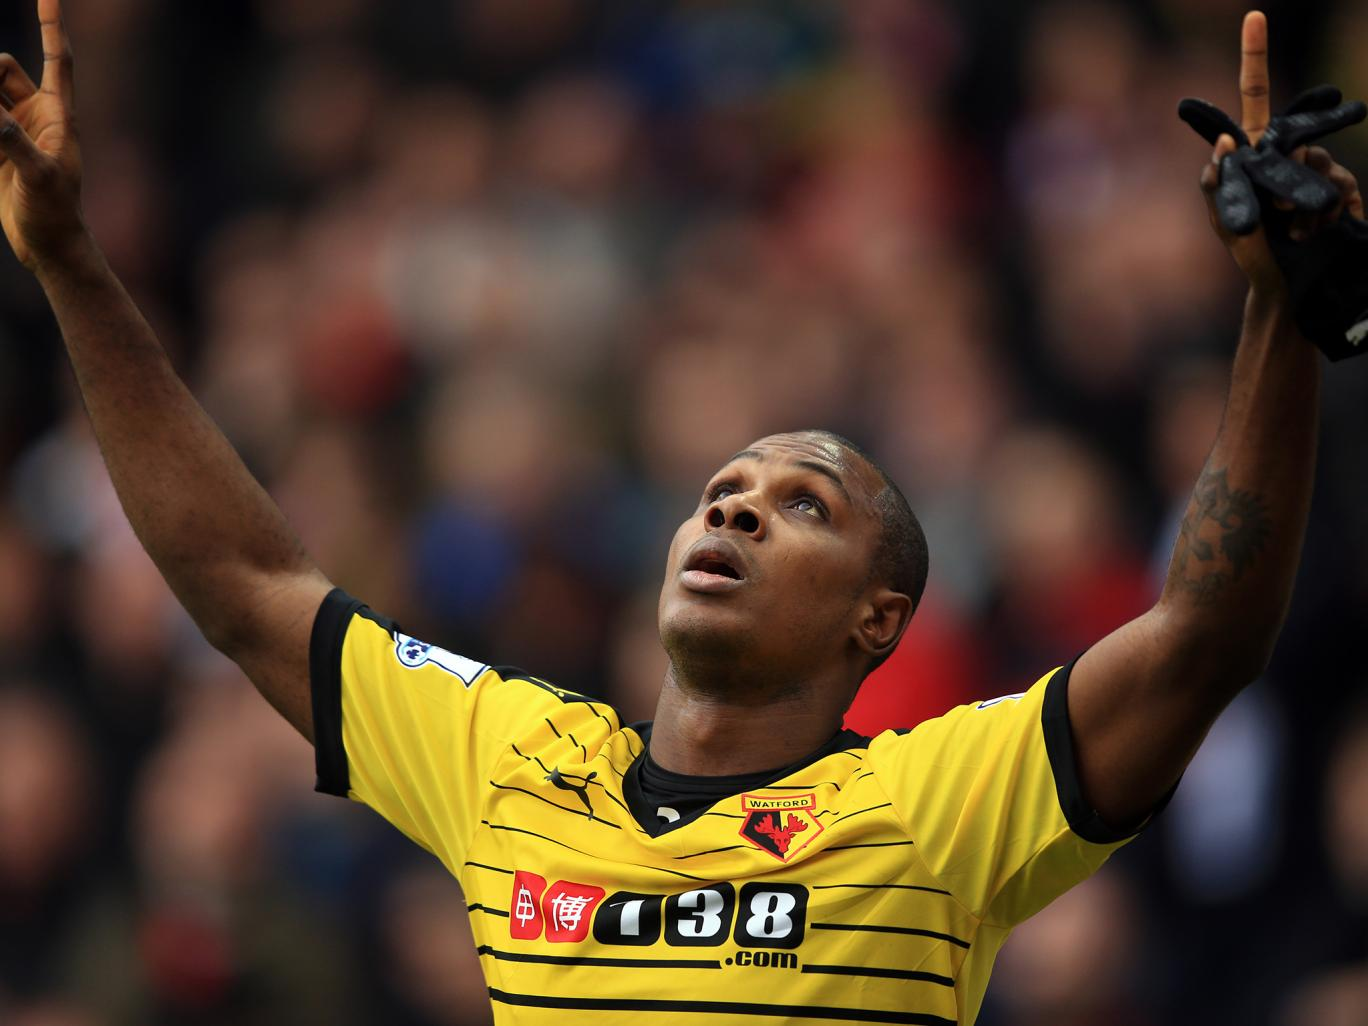 Ighalo faz excelente temporada (Foto: Getty Images)